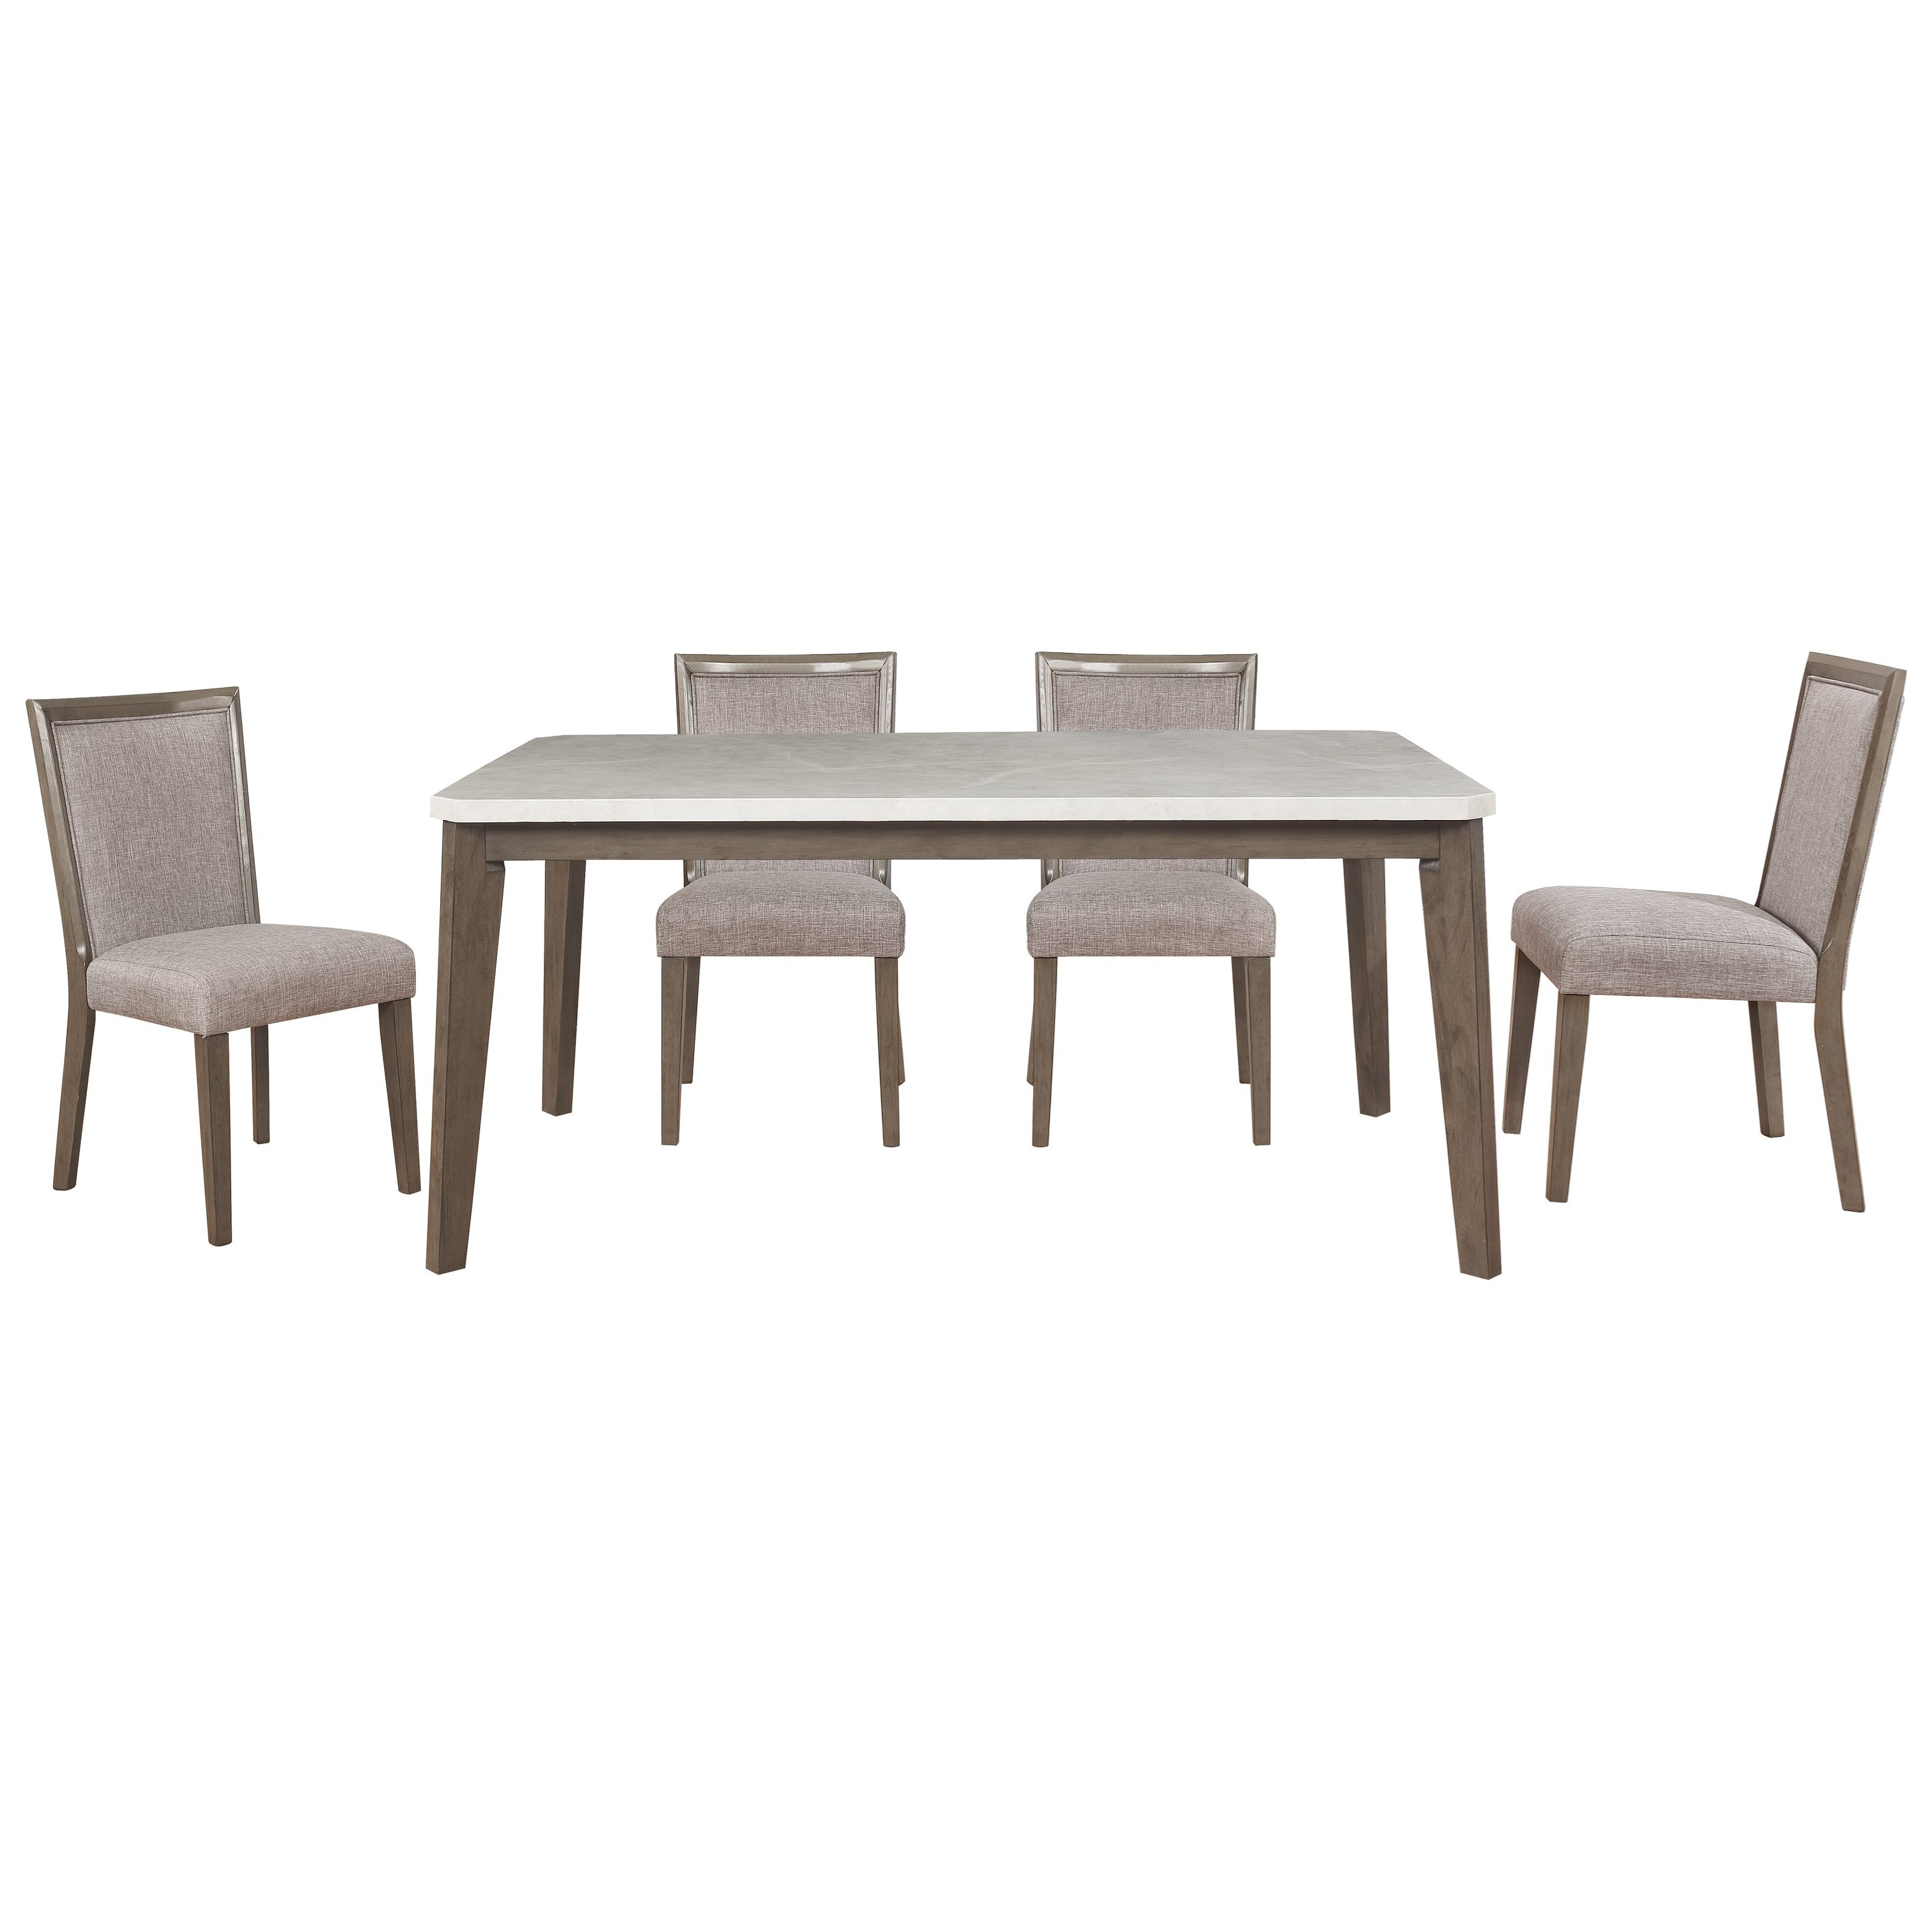 Primm Primm 5PC Set by Powell at Westrich Furniture & Appliances